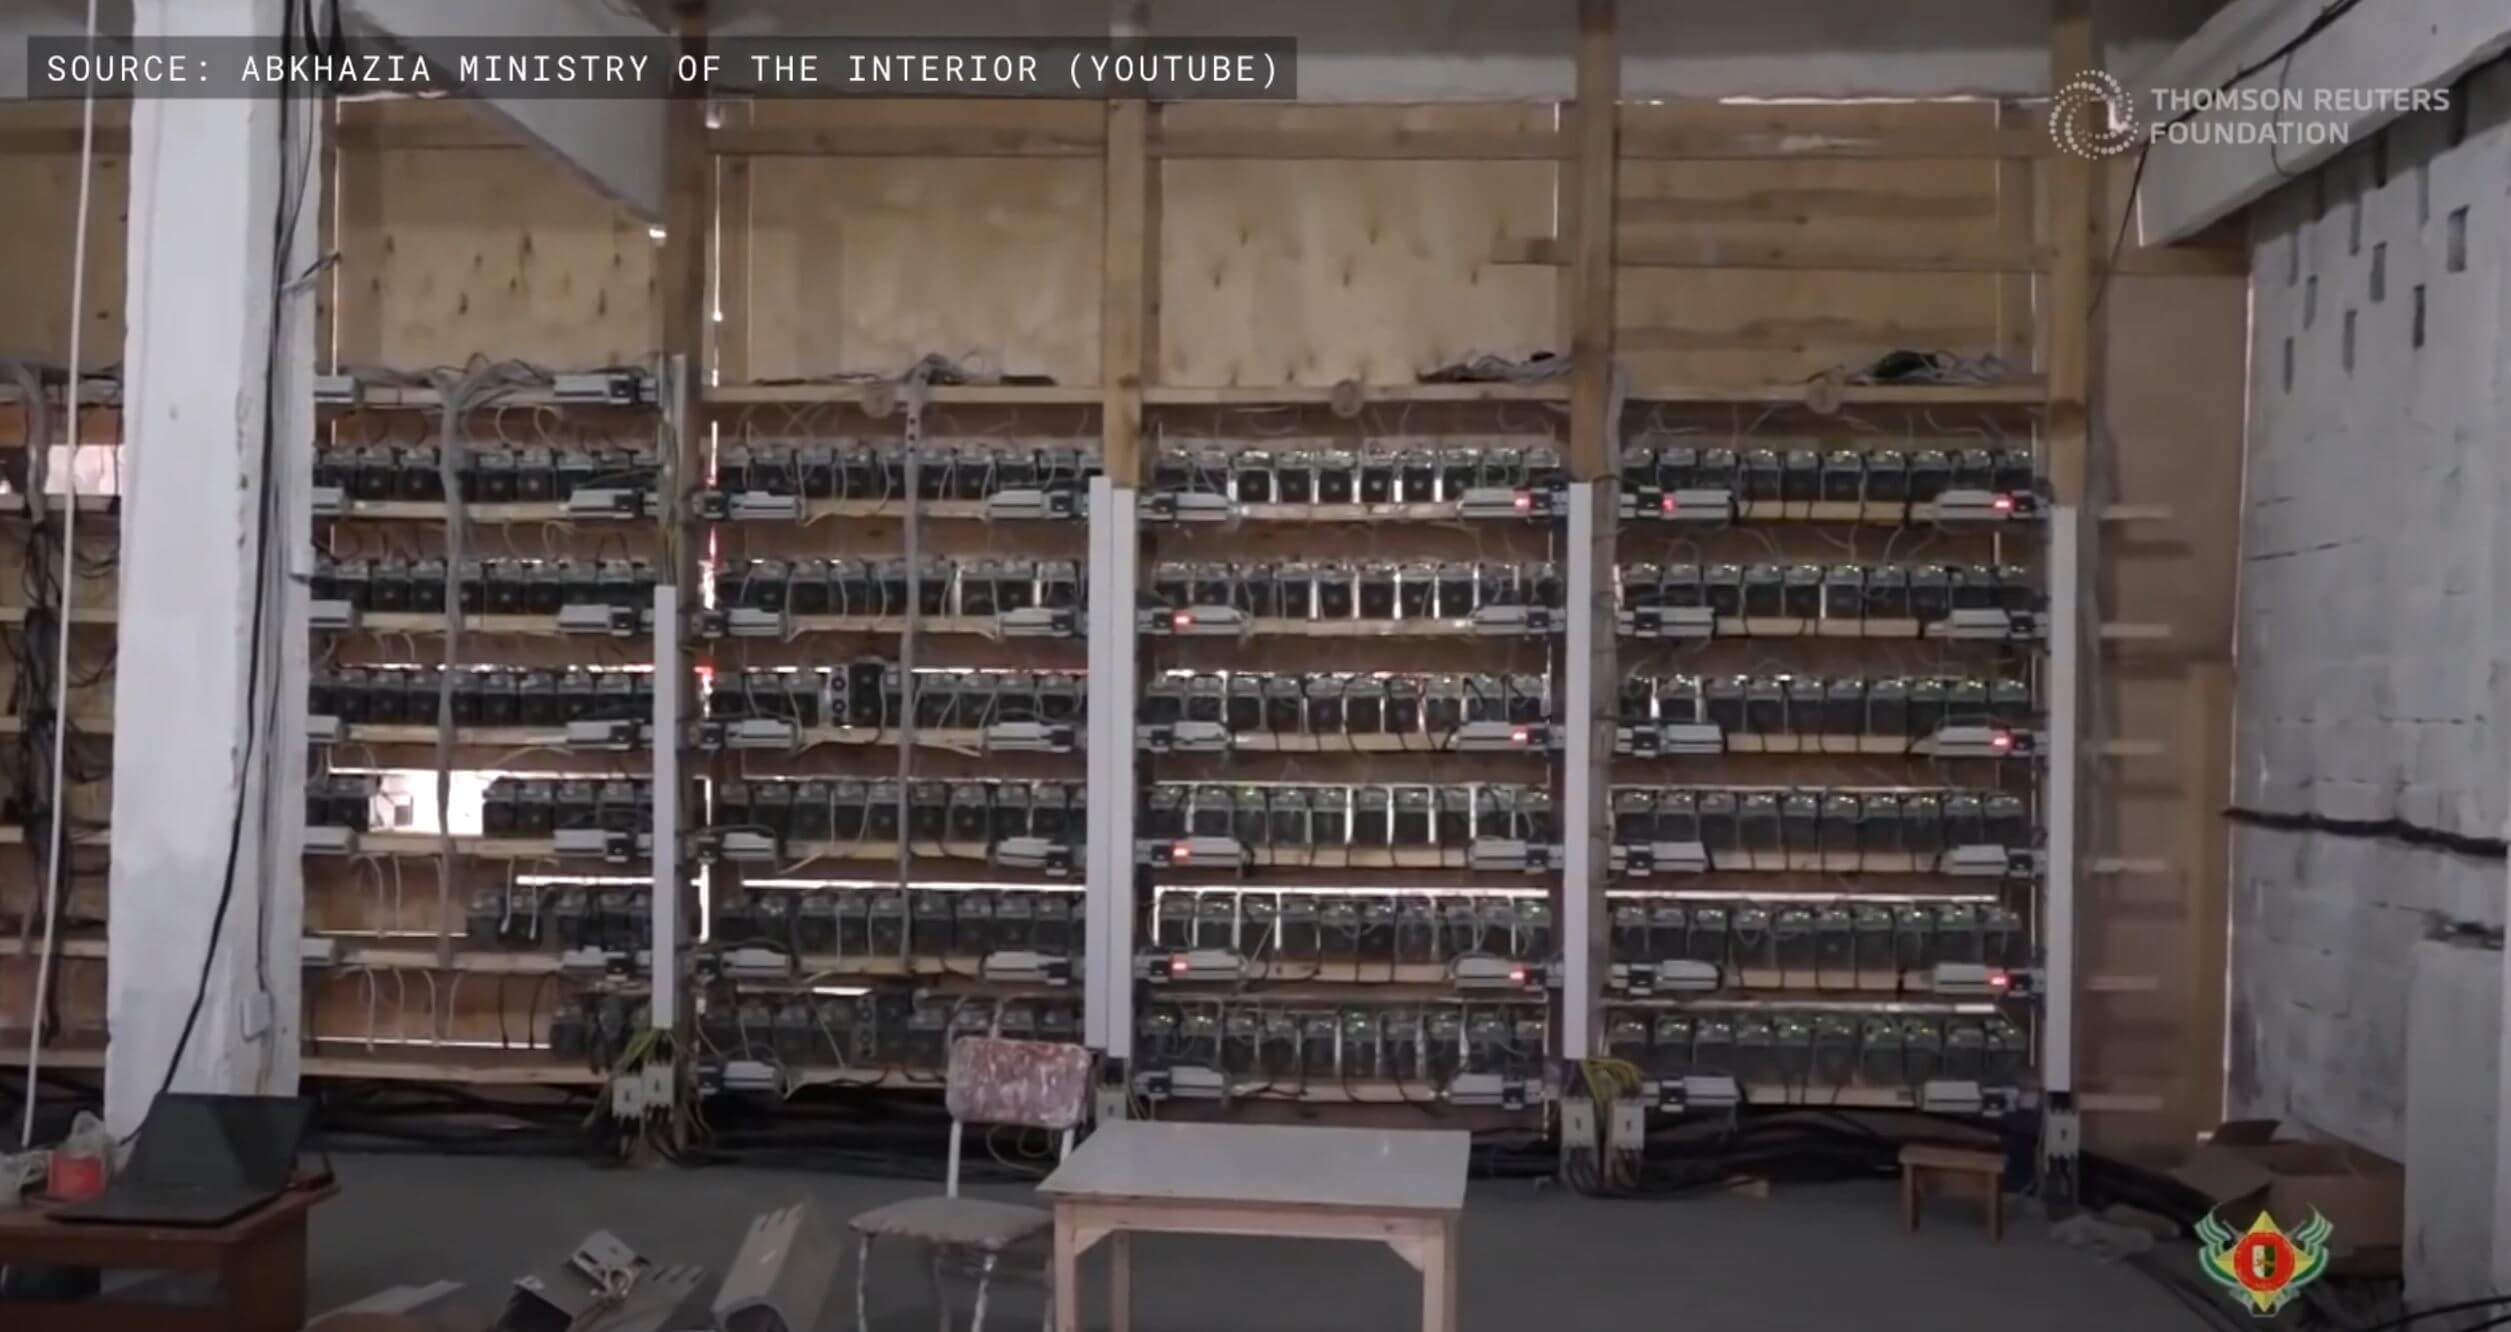 Thomson Reuters Foundation – How Bitcoin mining impacts the environment